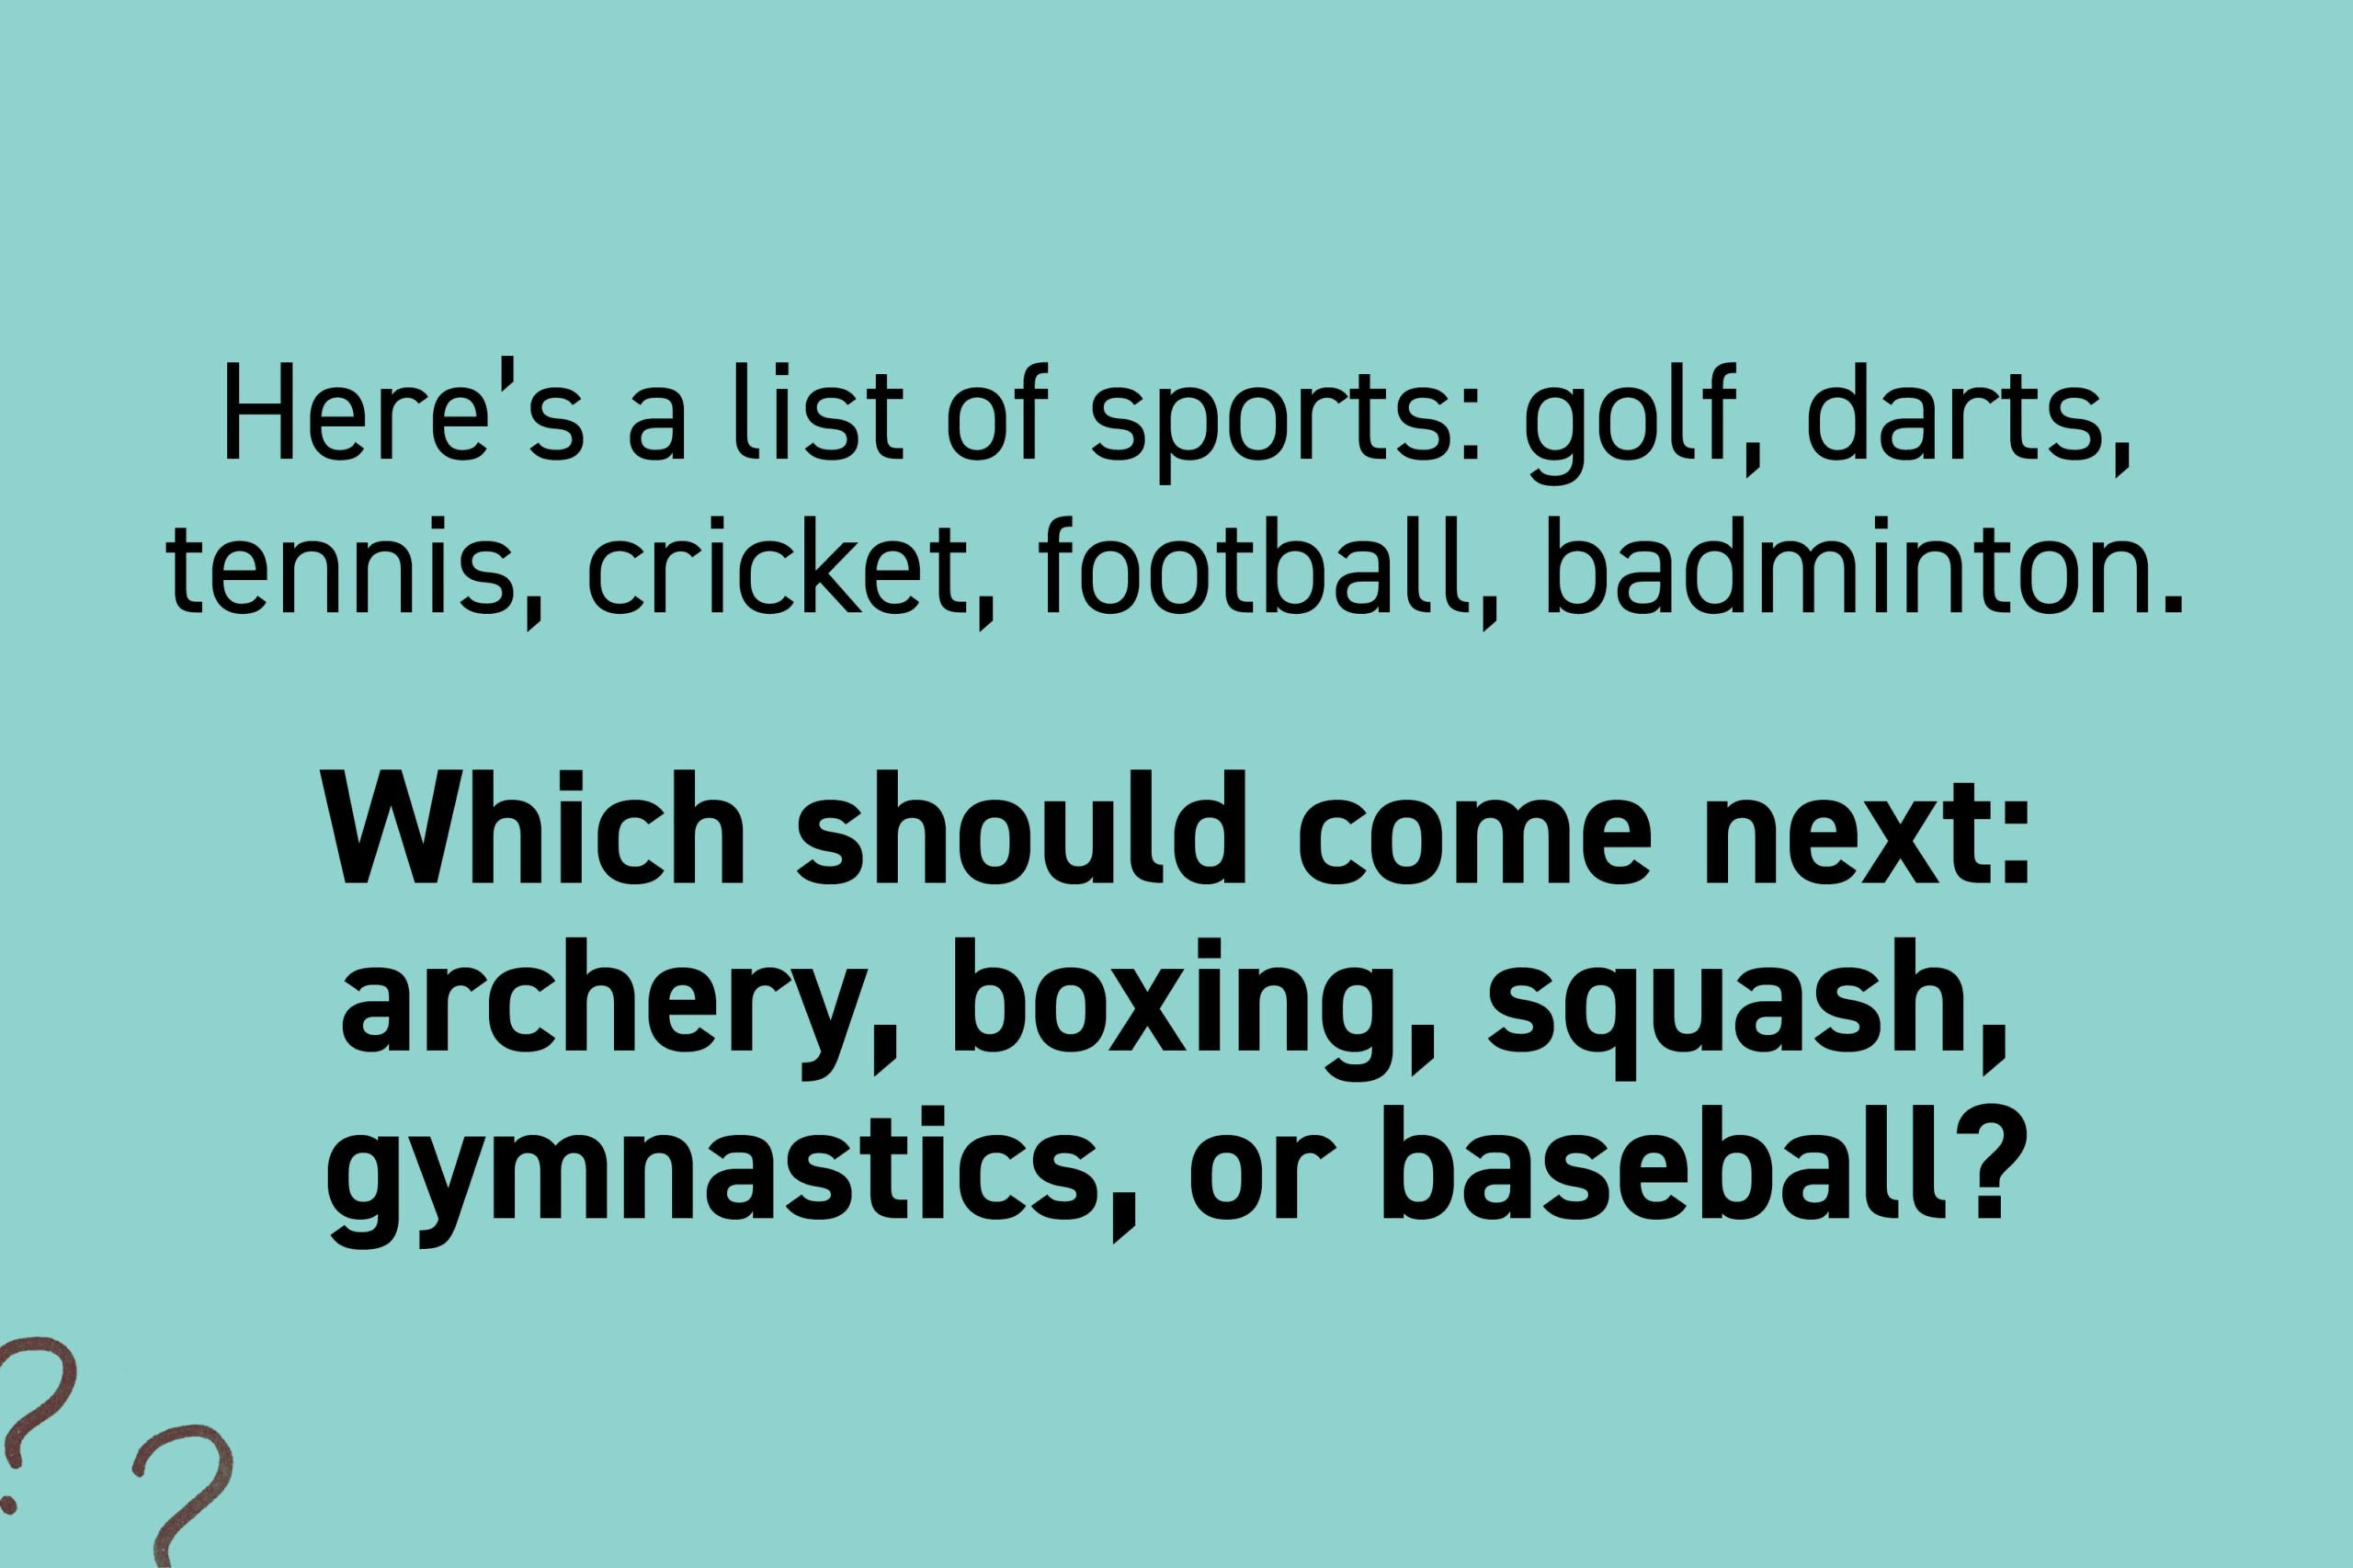 Here's a list of sports: golf, darts, tennis, cricket, football, badminton. Which should come next: archery, boxing, squash, gymnastics, or baseball?